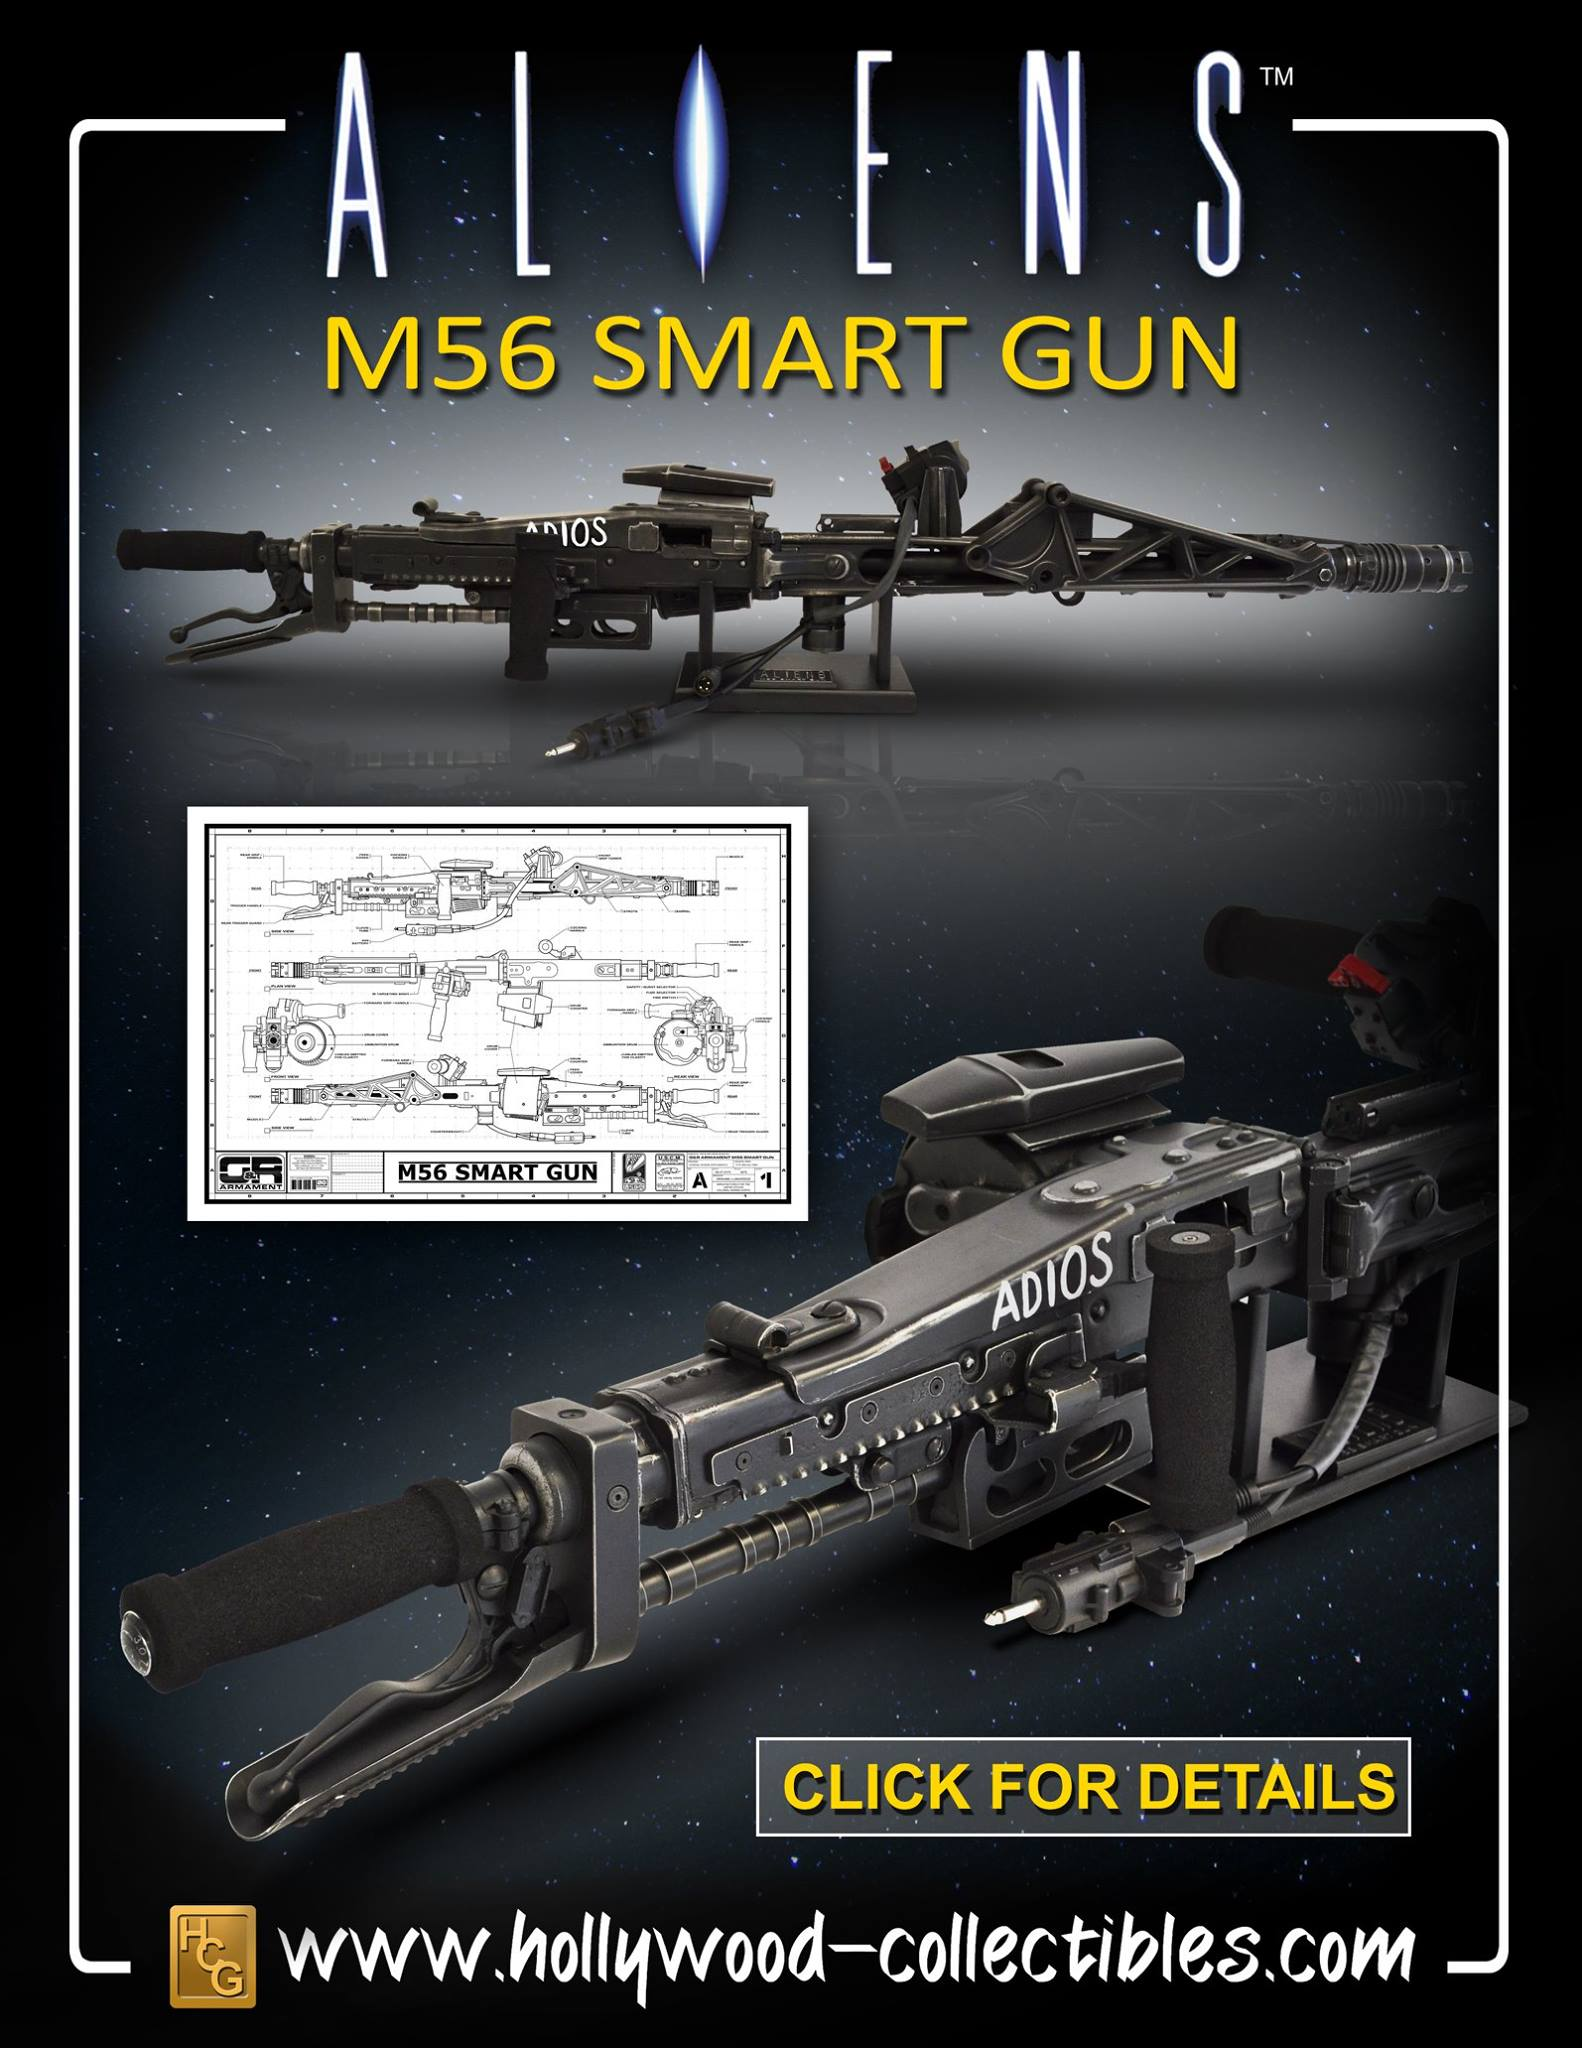 Hcg Aliens Life Size M56 Smartgun Prop Replica The